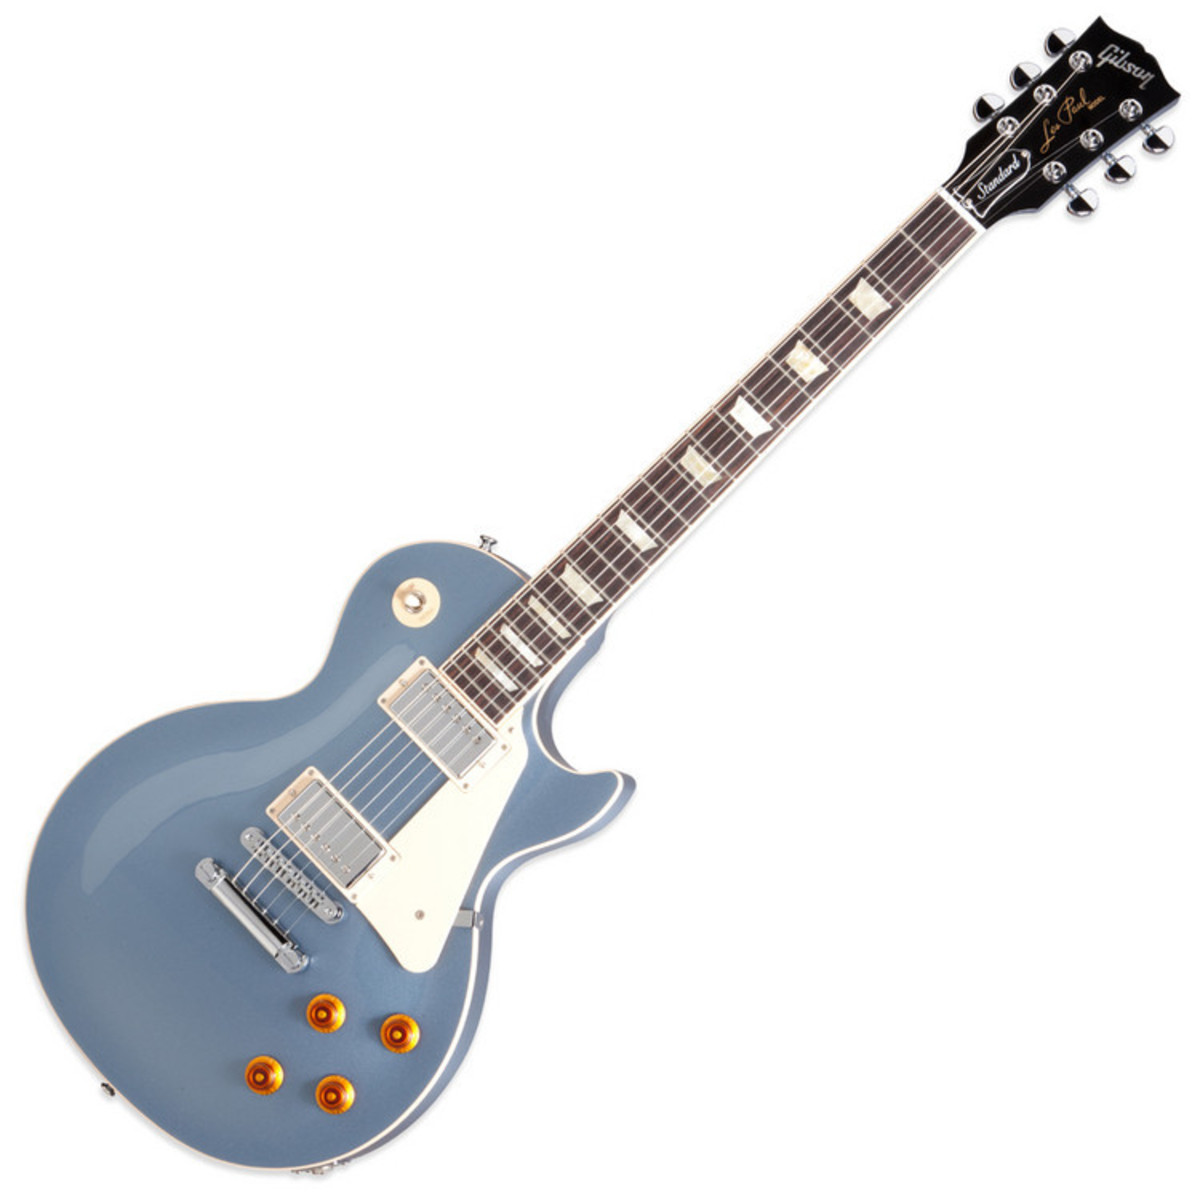 gibson les paul standard solid 2012 guitar blue mist with free gift at gear4music. Black Bedroom Furniture Sets. Home Design Ideas